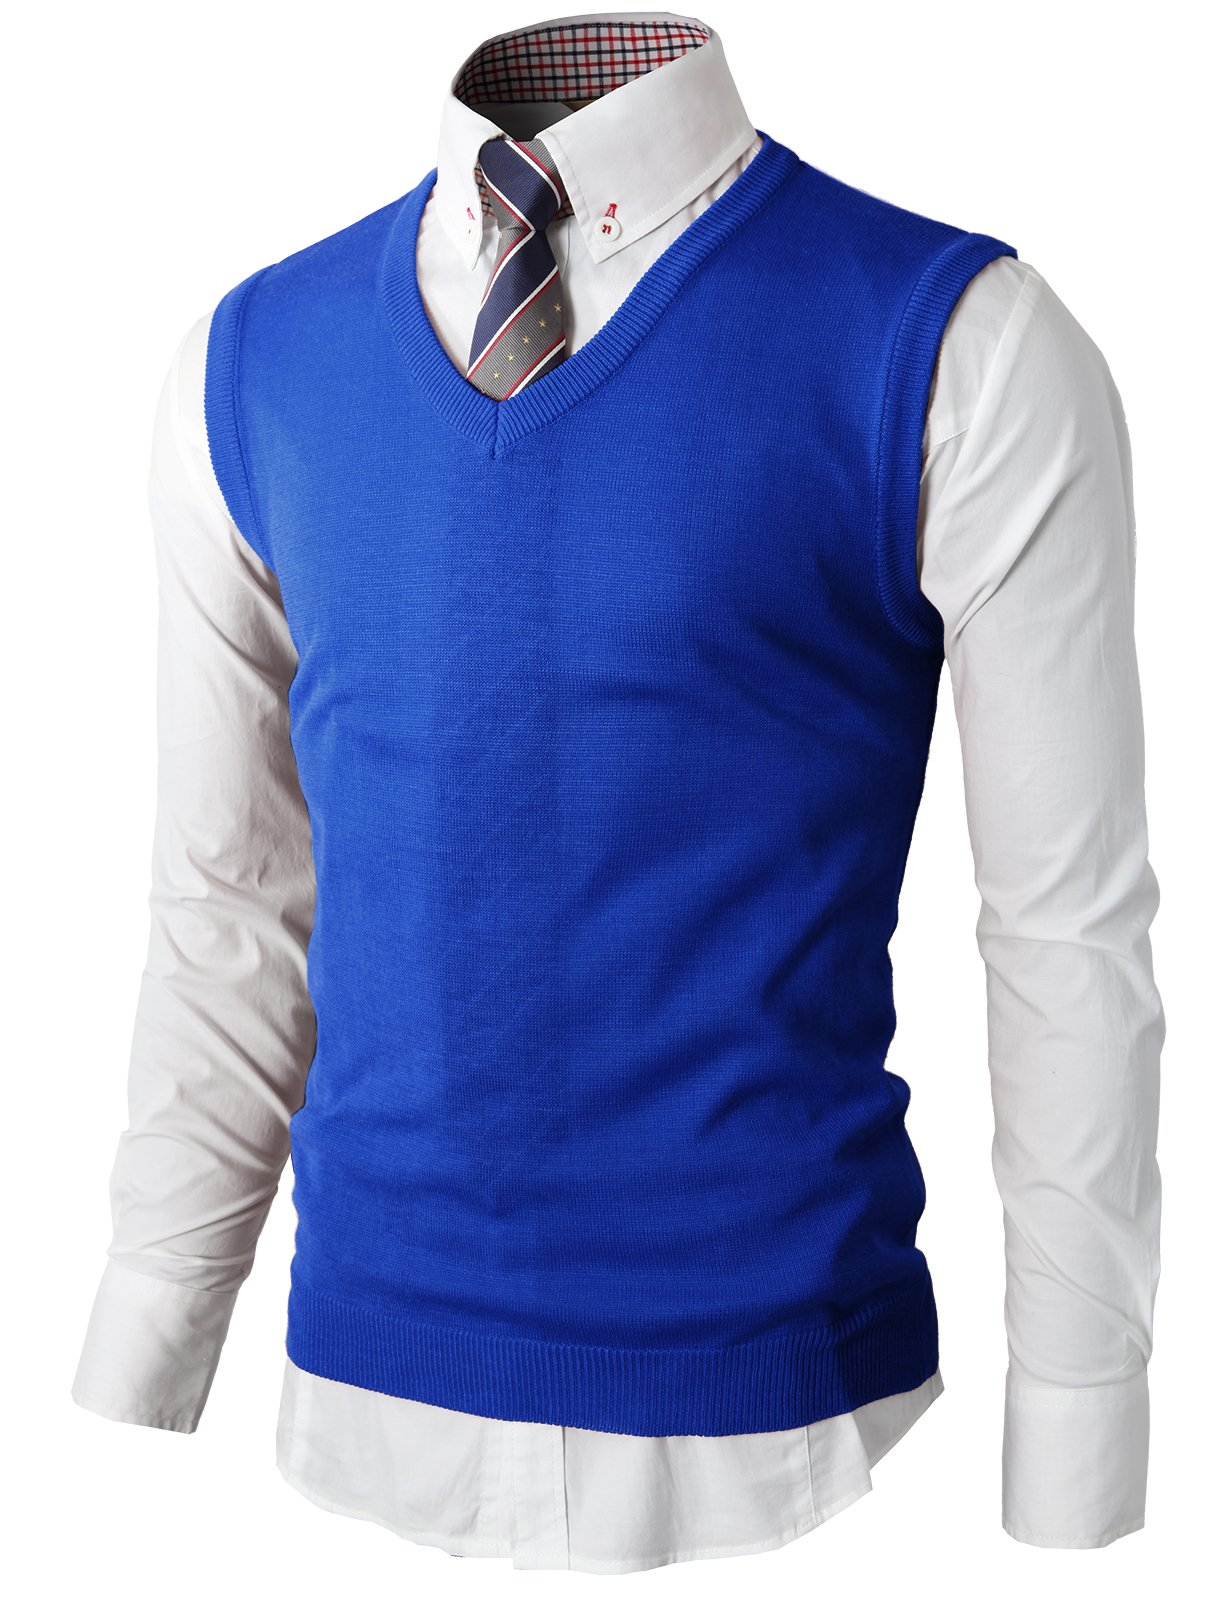 H2H Mens Slim Fit Basic Plain Knitted V-Neck Pullover Sweaters Vest Blue US 2XL/Asia 3XL (KMOV050)